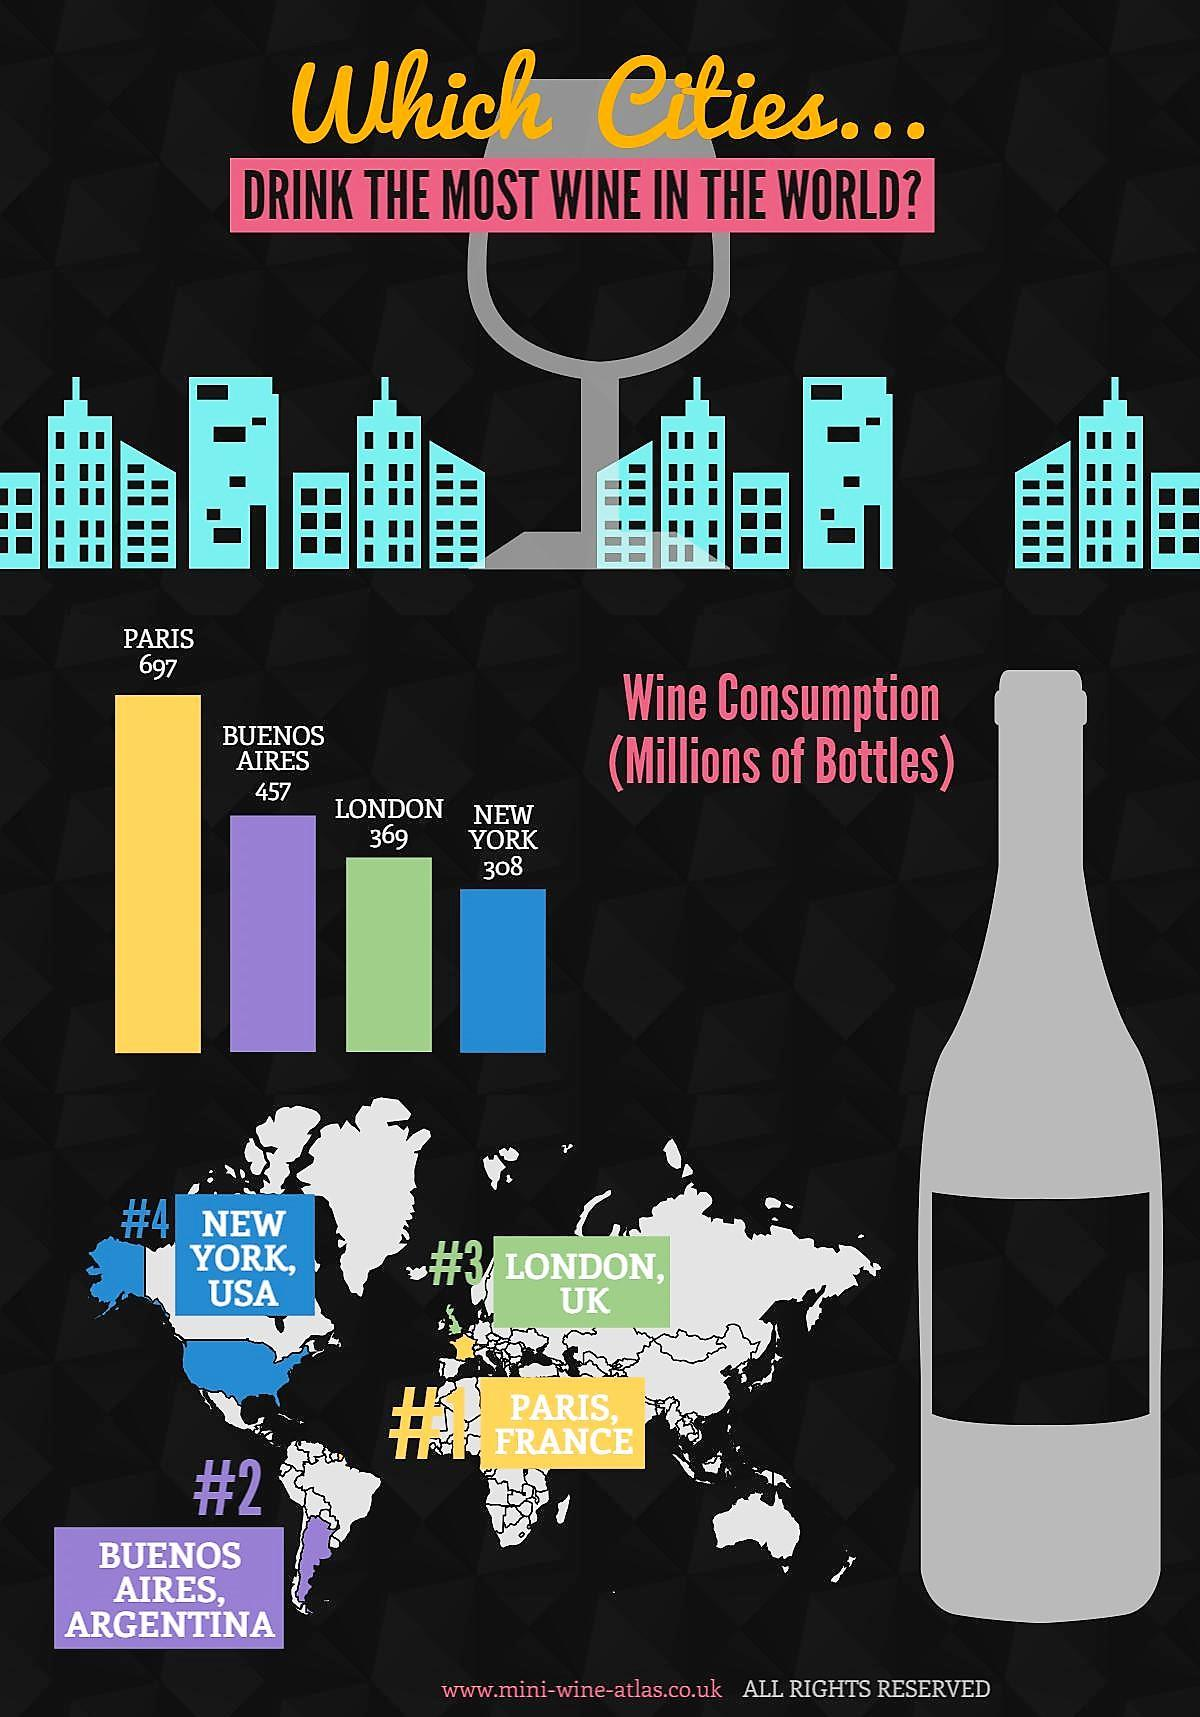 which cities drink the most wine in the world?